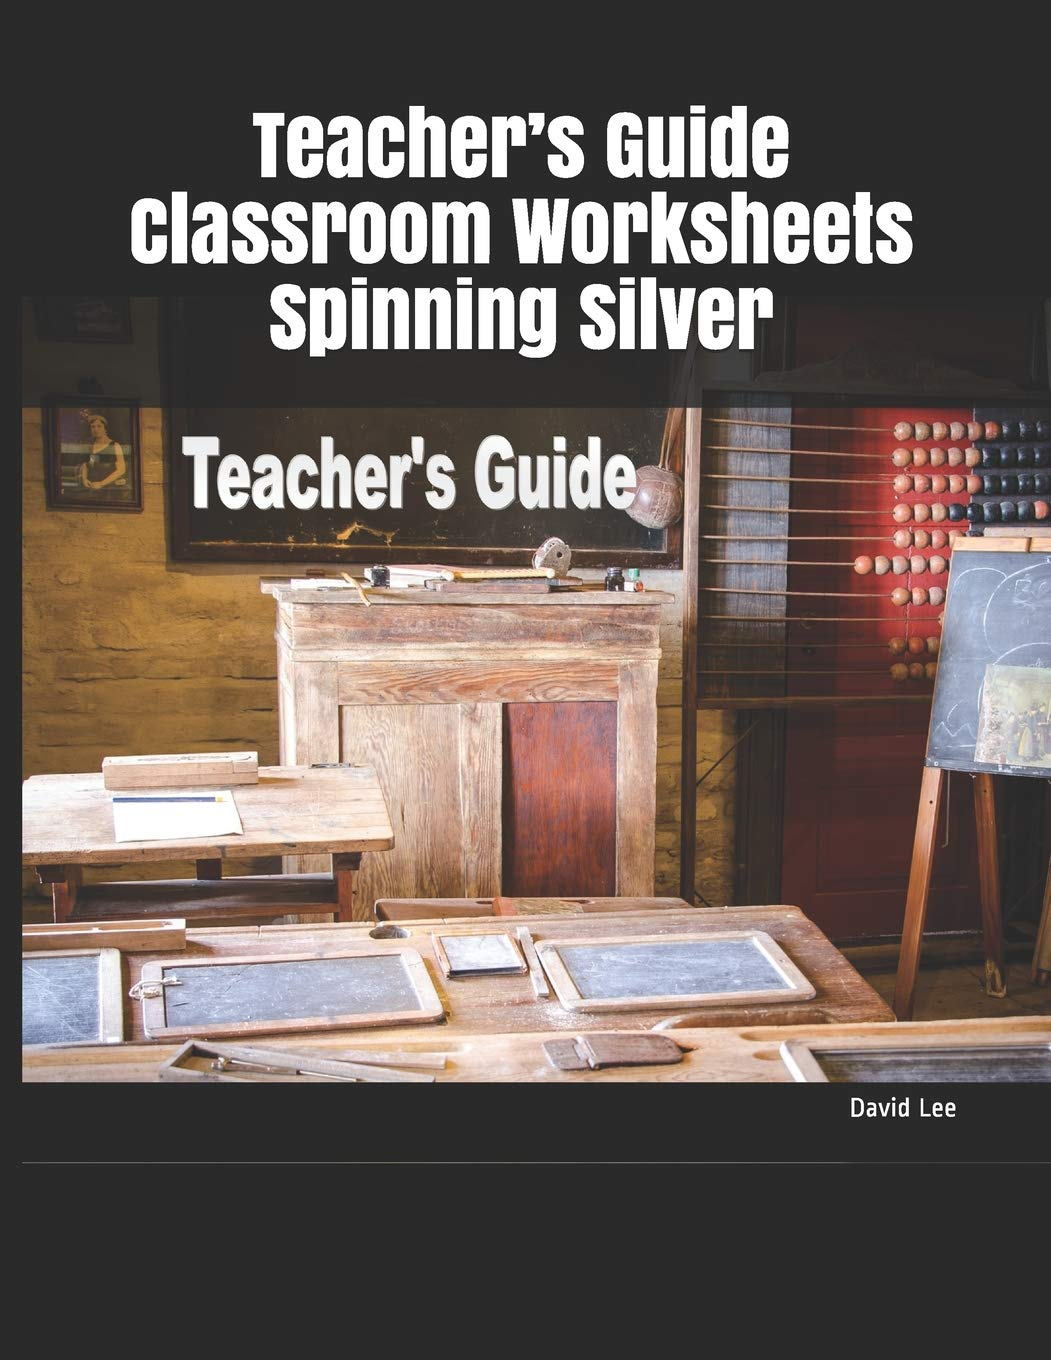 Teachers Guide Classroom Worksheets Spinning Silver: Amazon.es ...